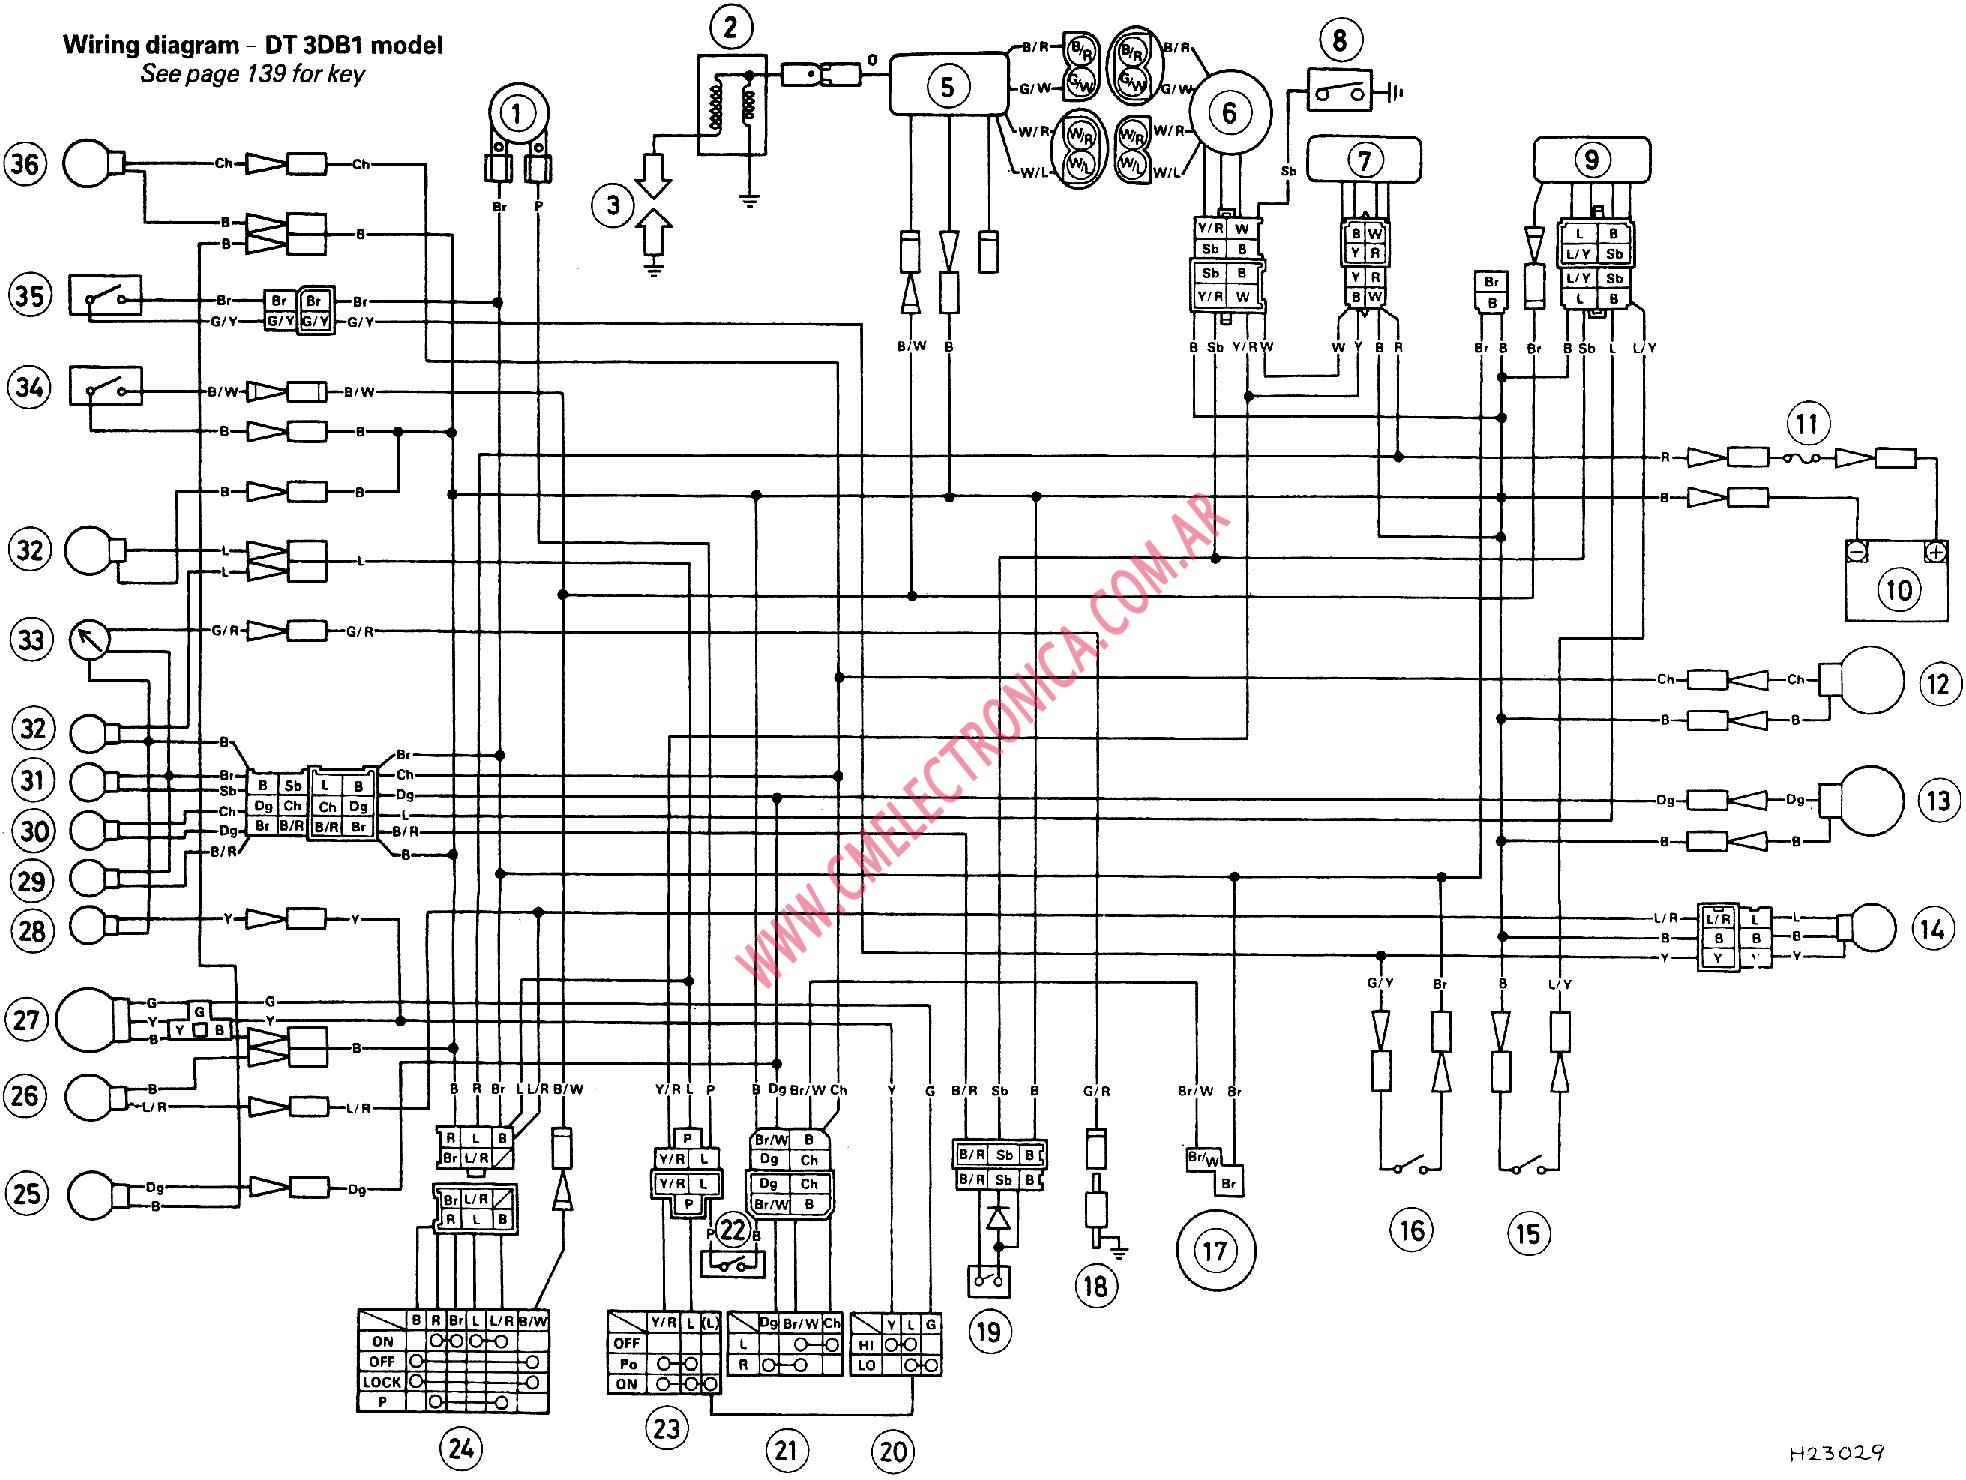 yamaha xs wiring diagram - auto electrical wiring diagram bobcat s250 wiring diagram heater blower yamaha wiring diagram heater